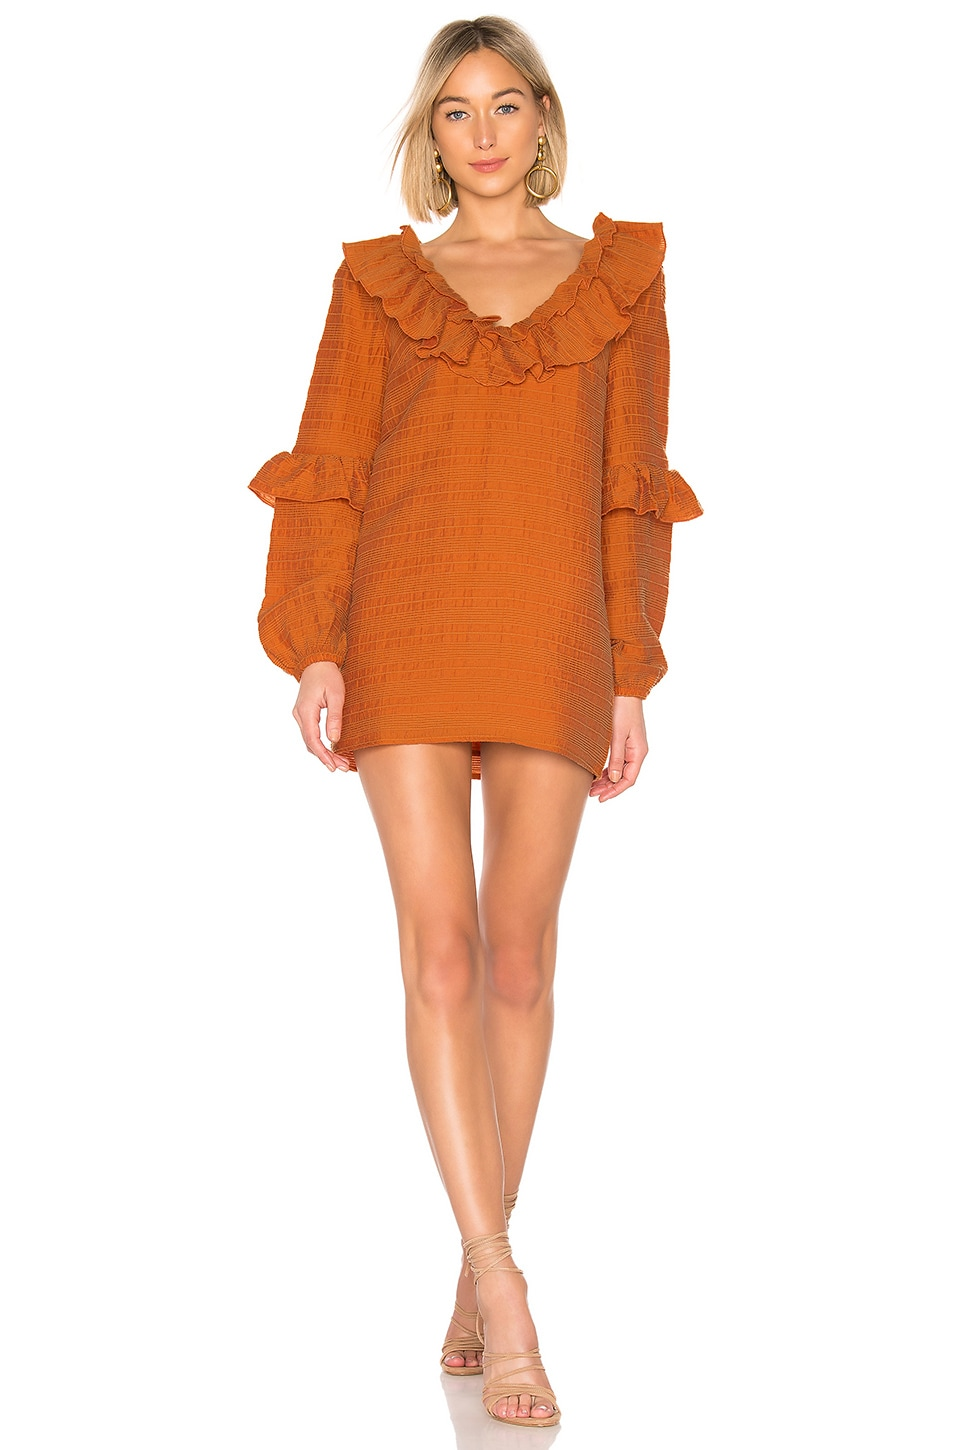 Tularosa Heather Dress in Orange